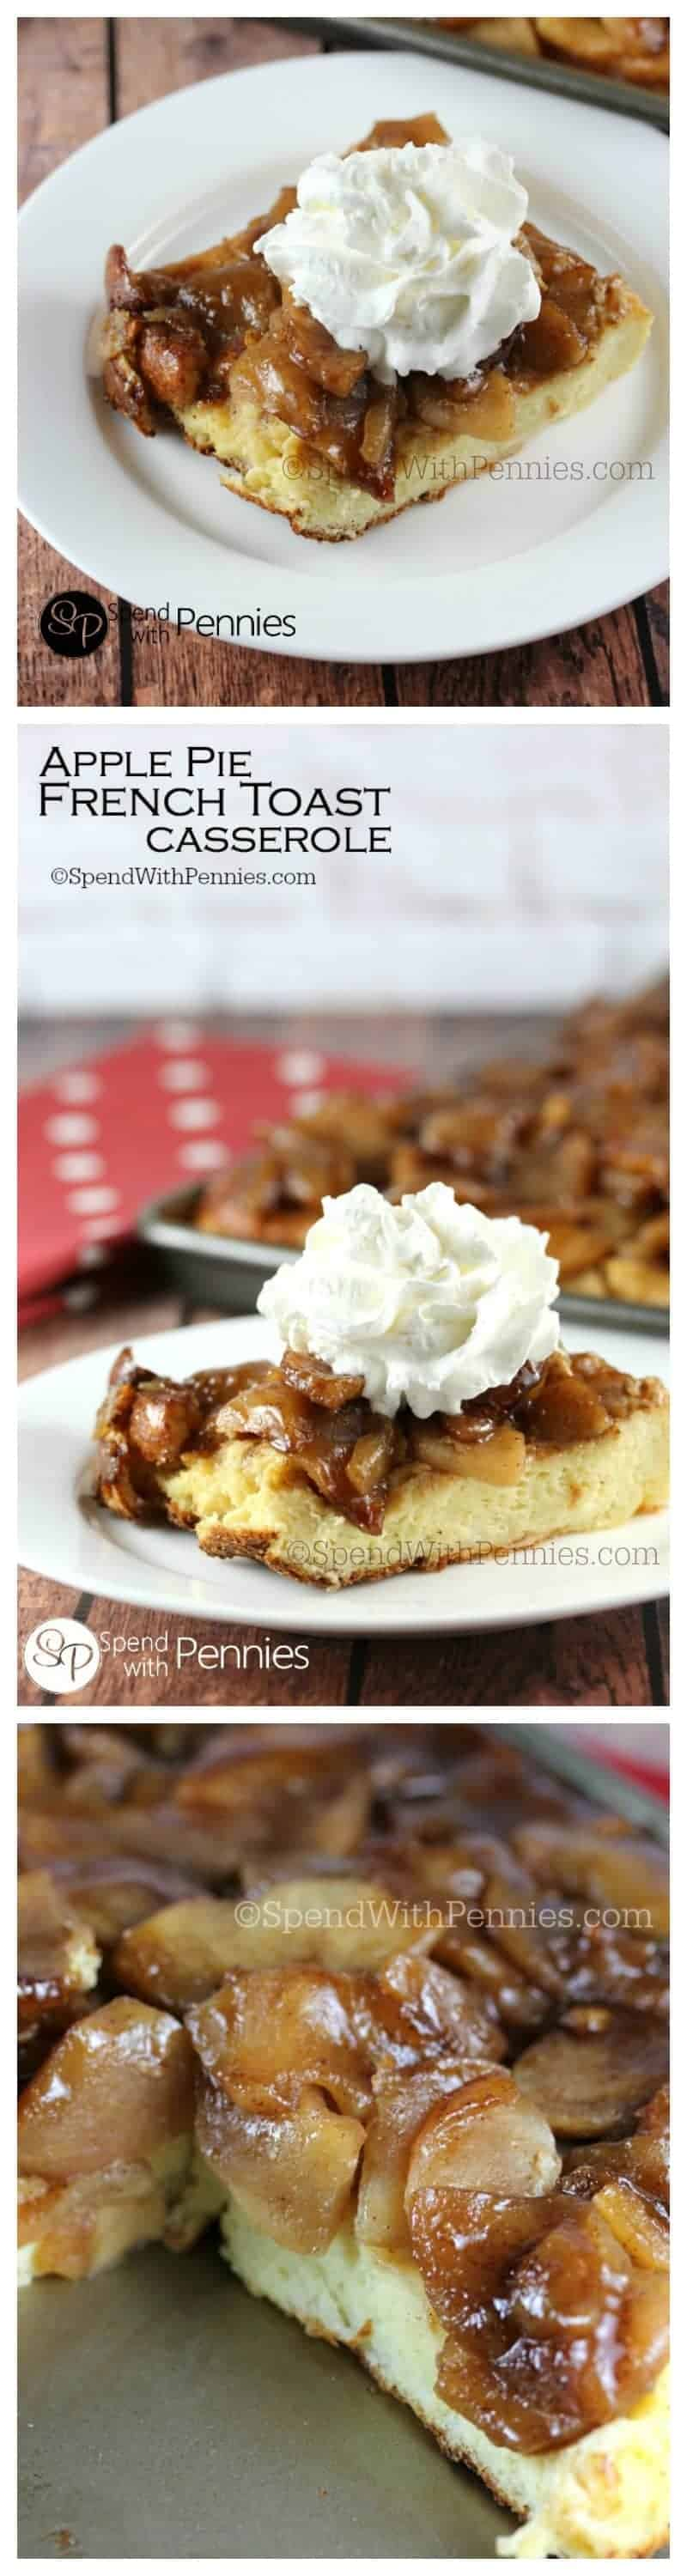 Apple Pie French Toast Casserole is a delicious overnight breakfast recipe. If you're looking for the perfect make ahead breakfast to serve for a holiday breakfast this is it!